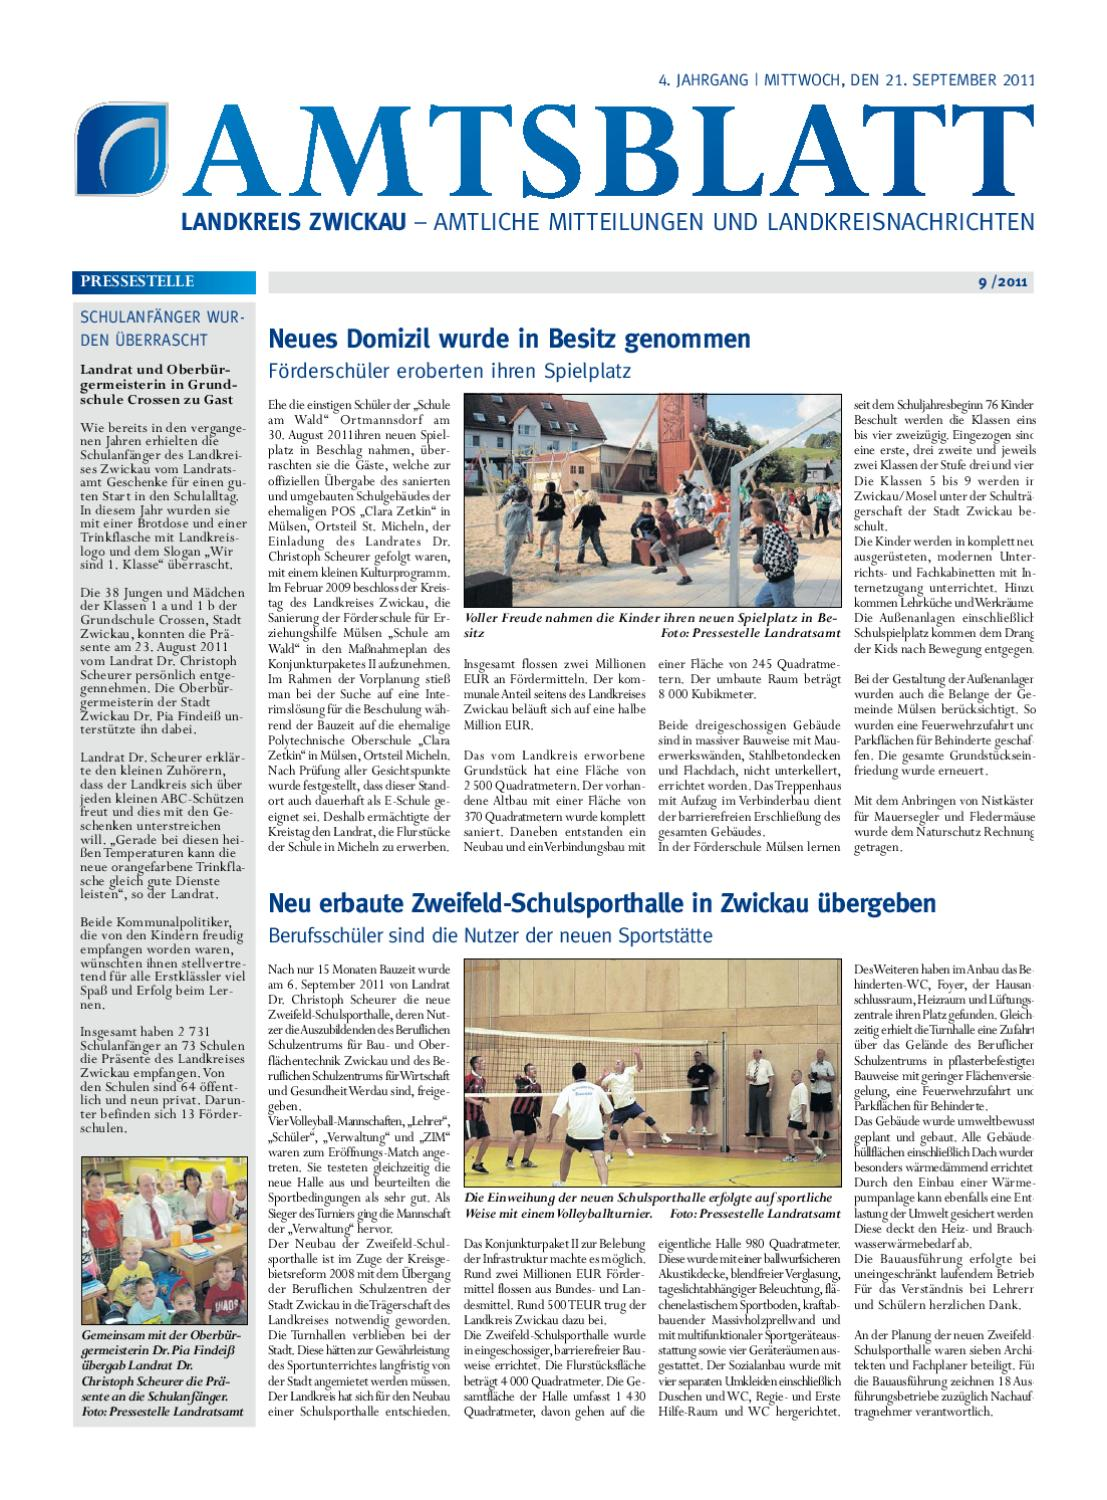 20110921_Amtsblatt_LKZ_H by Page Pro Media GmbH - issuu